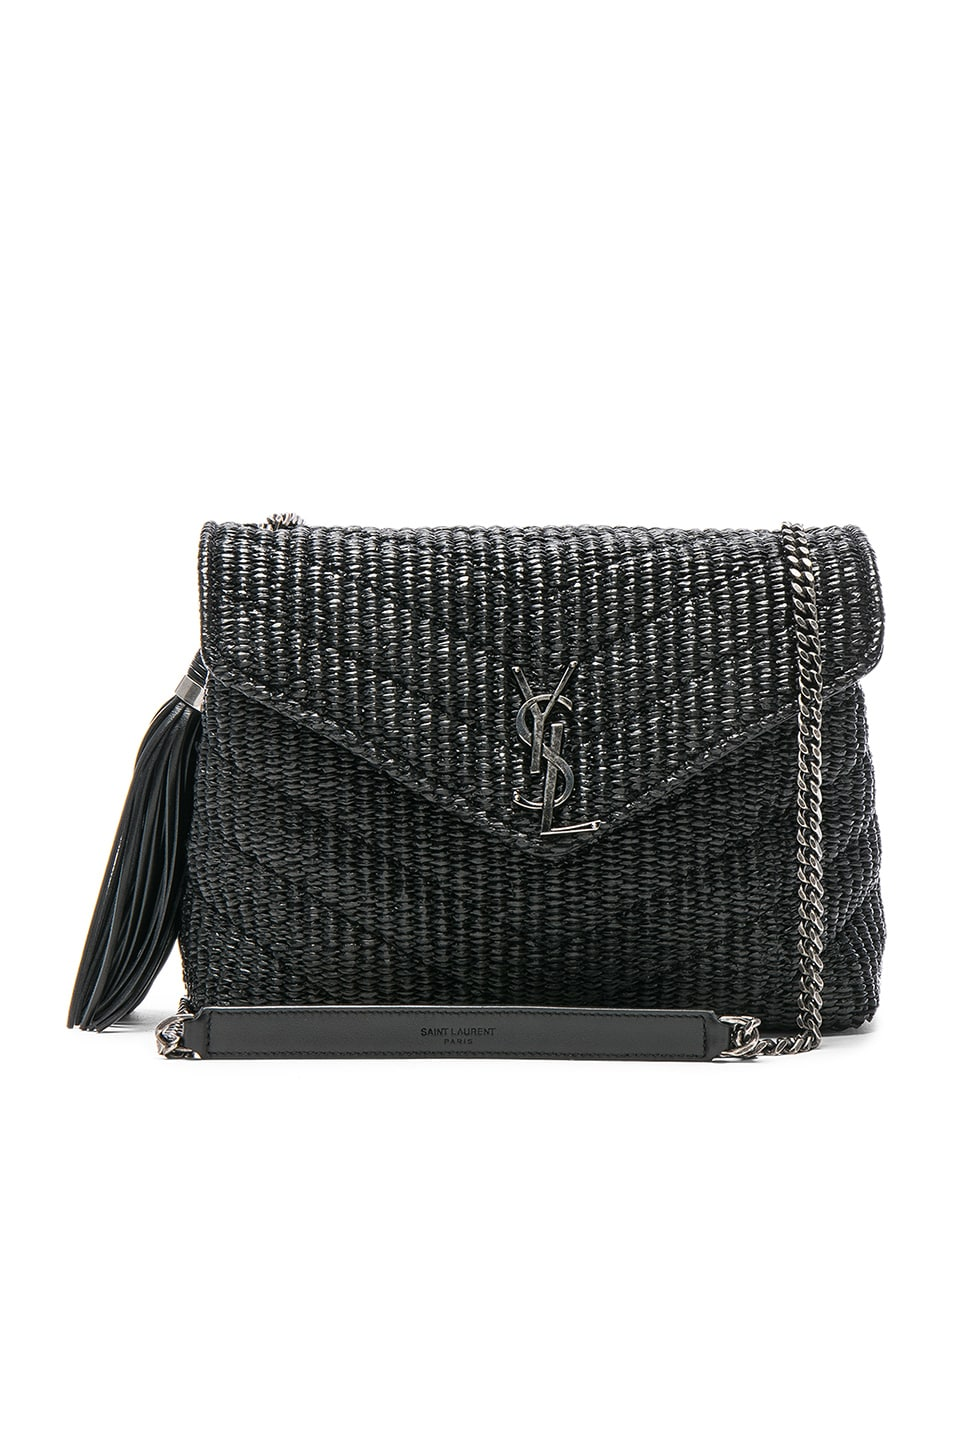 Image 1 of Saint Laurent Small Raffia Soft Chain Bag in Black